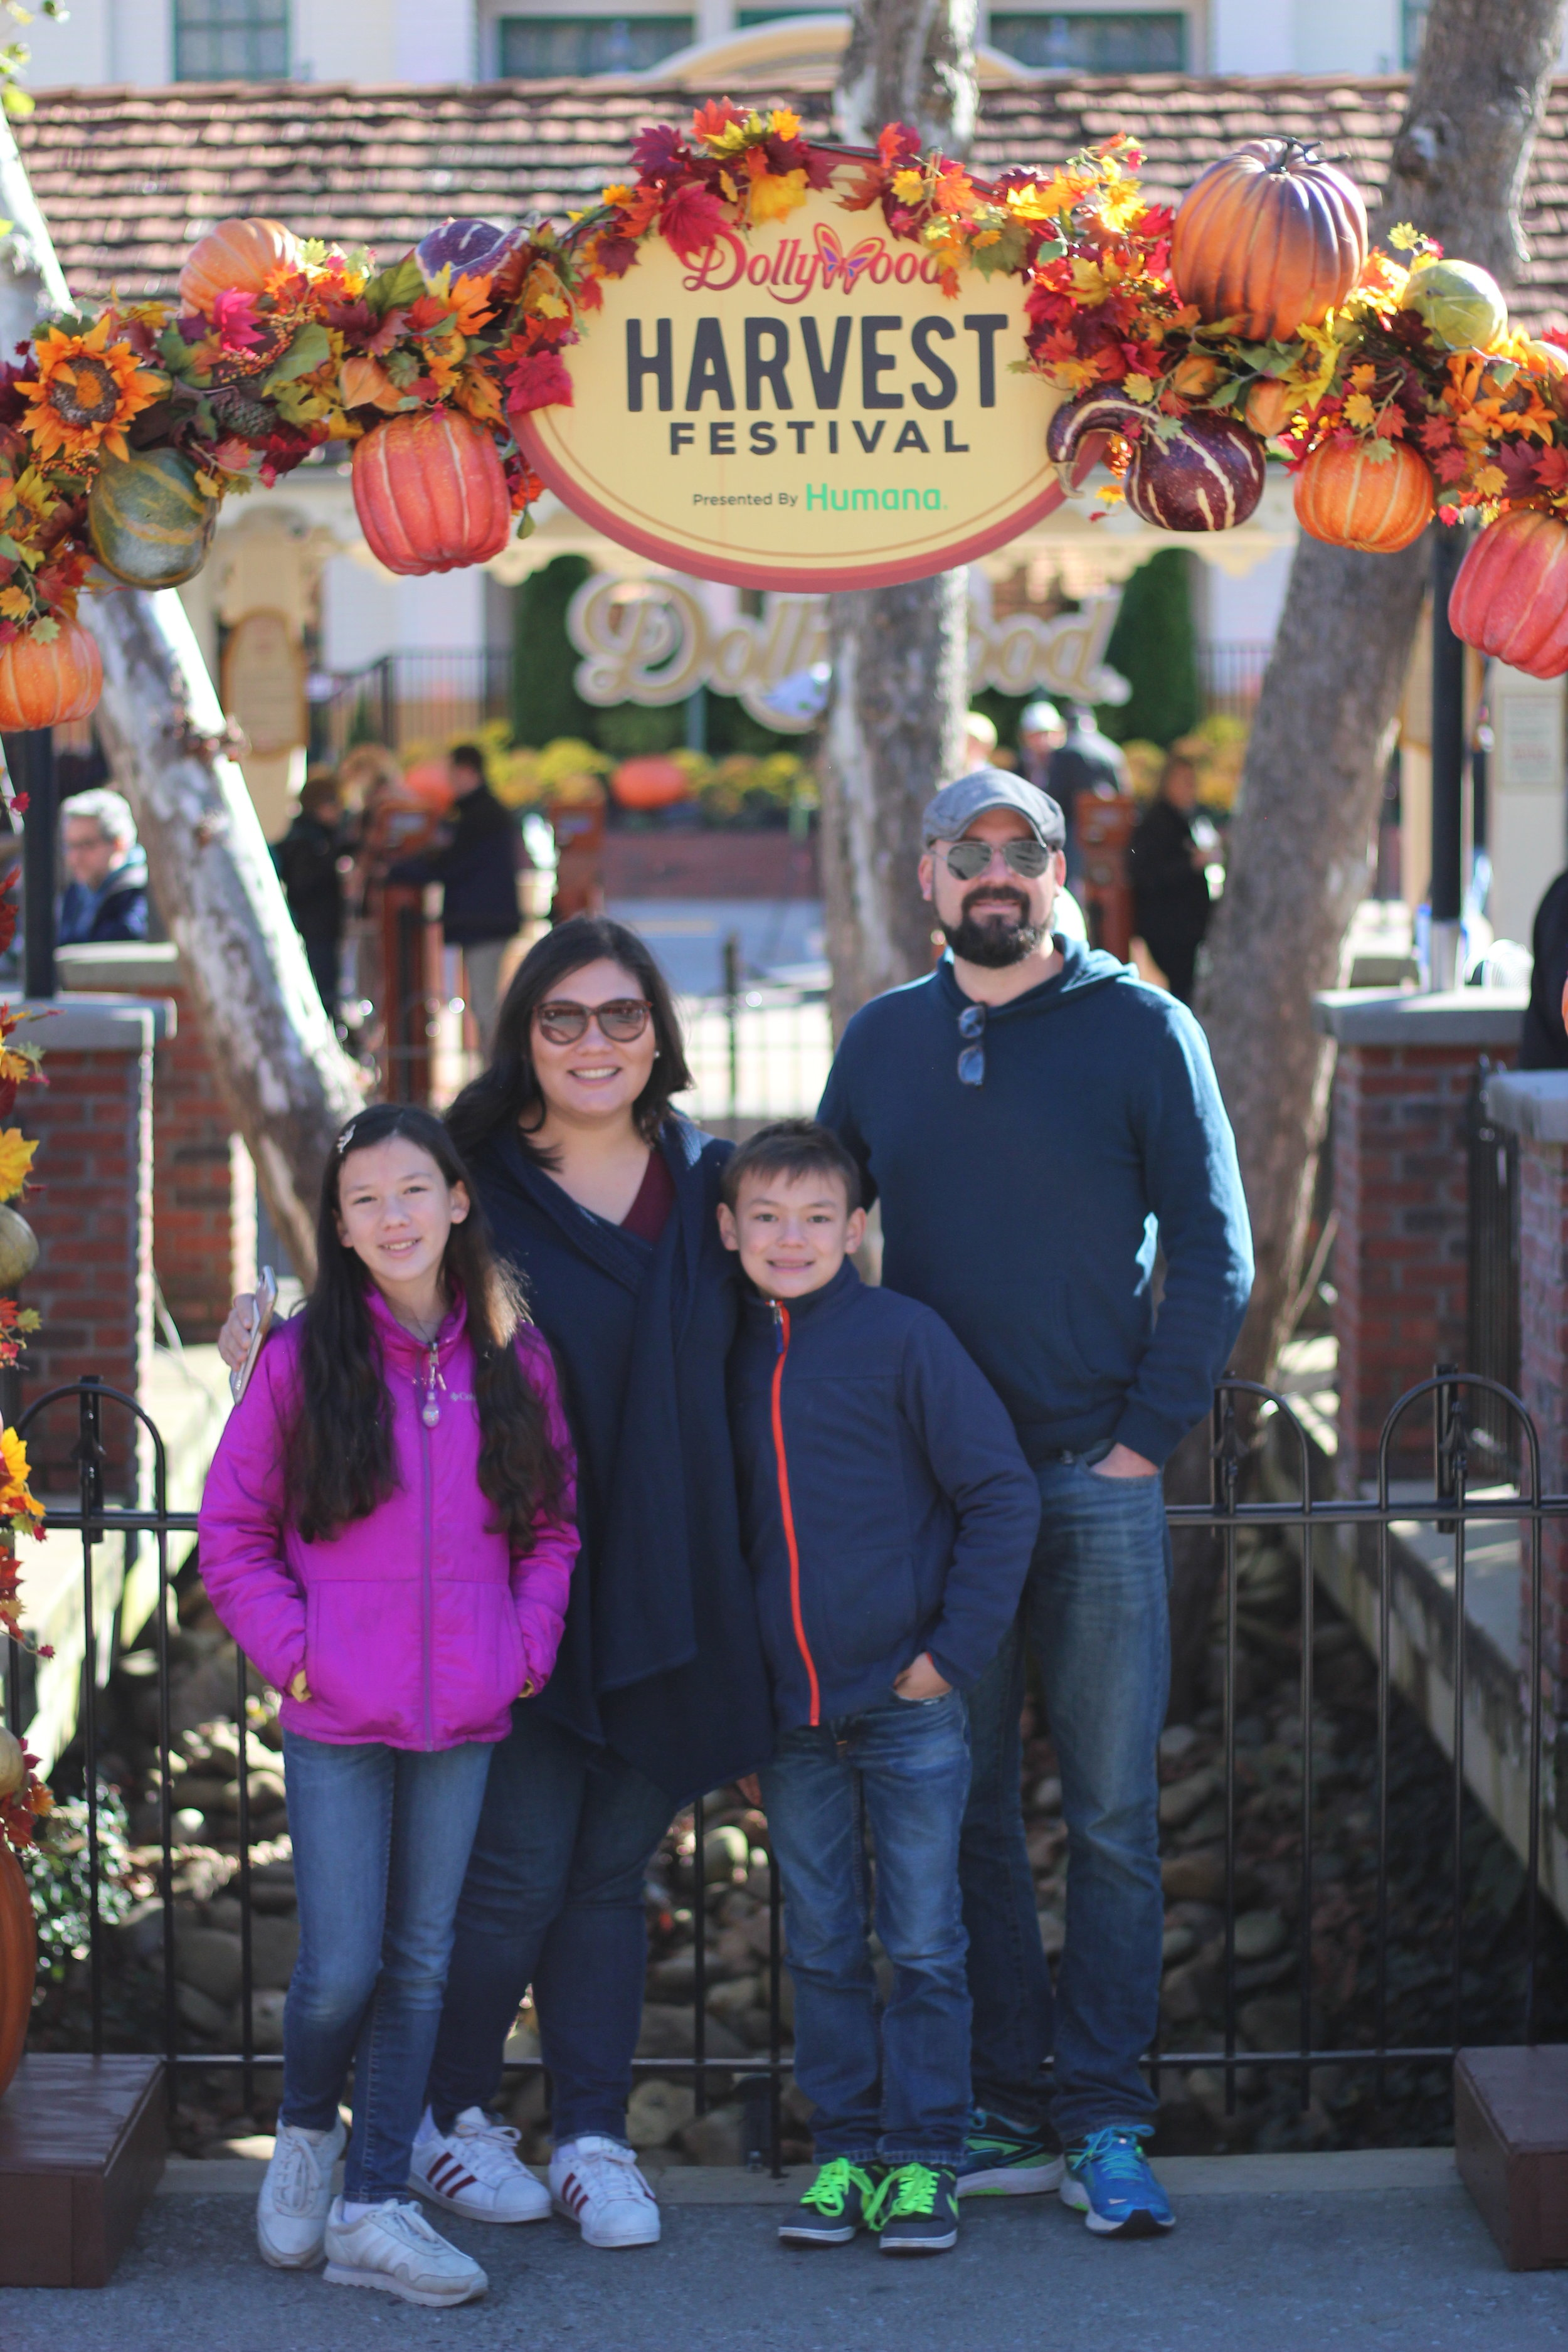 Dollywood Review from Our Wonder Collective at Harvest Festival